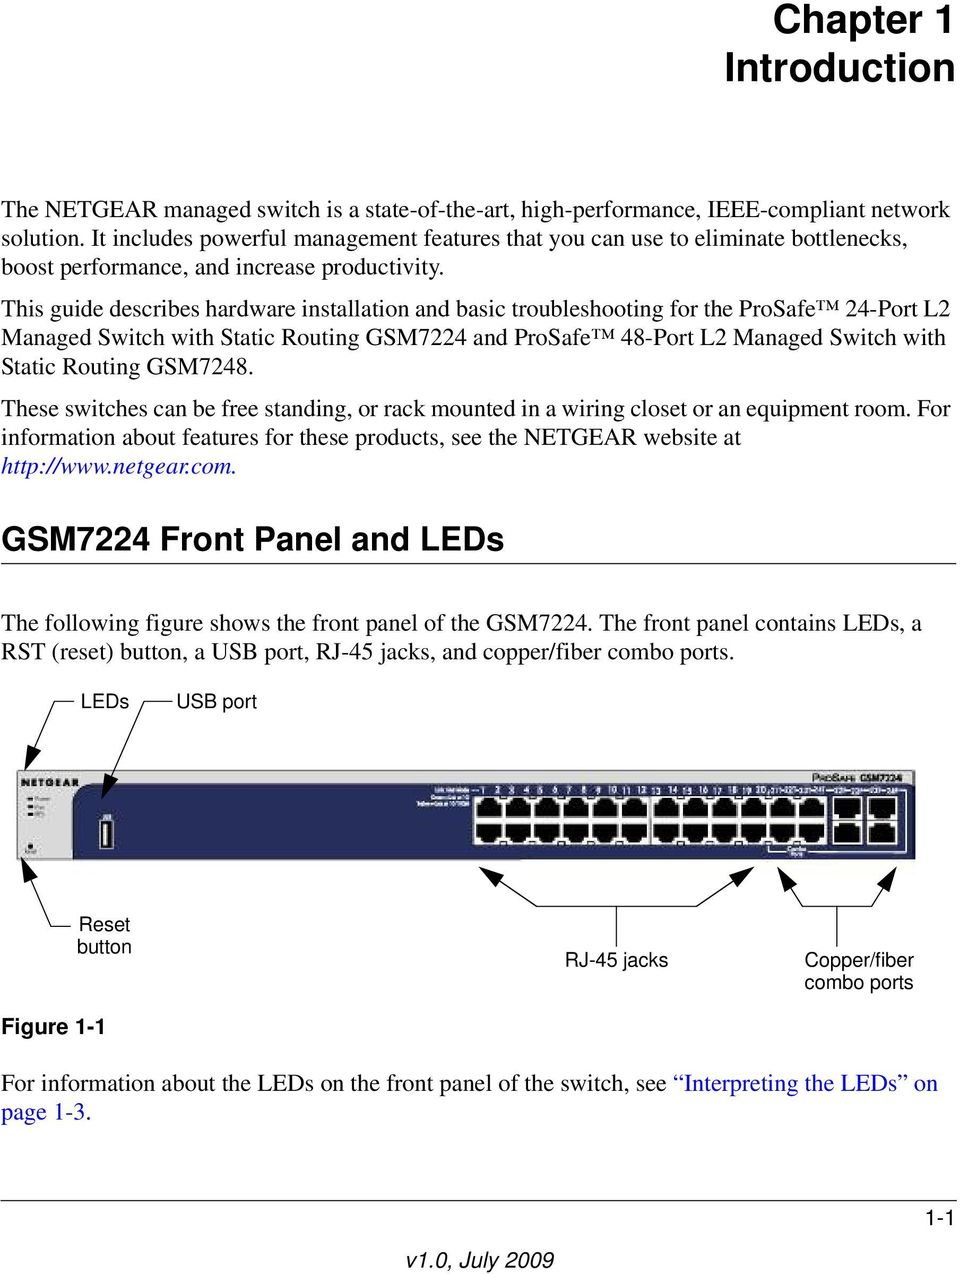 This guide describes hardware installation and basic troubleshooting for the ProSafe 24-Port L2 Managed Switch with Static Routing GSM7224 and ProSafe 48-Port L2 Managed Switch with Static Routing